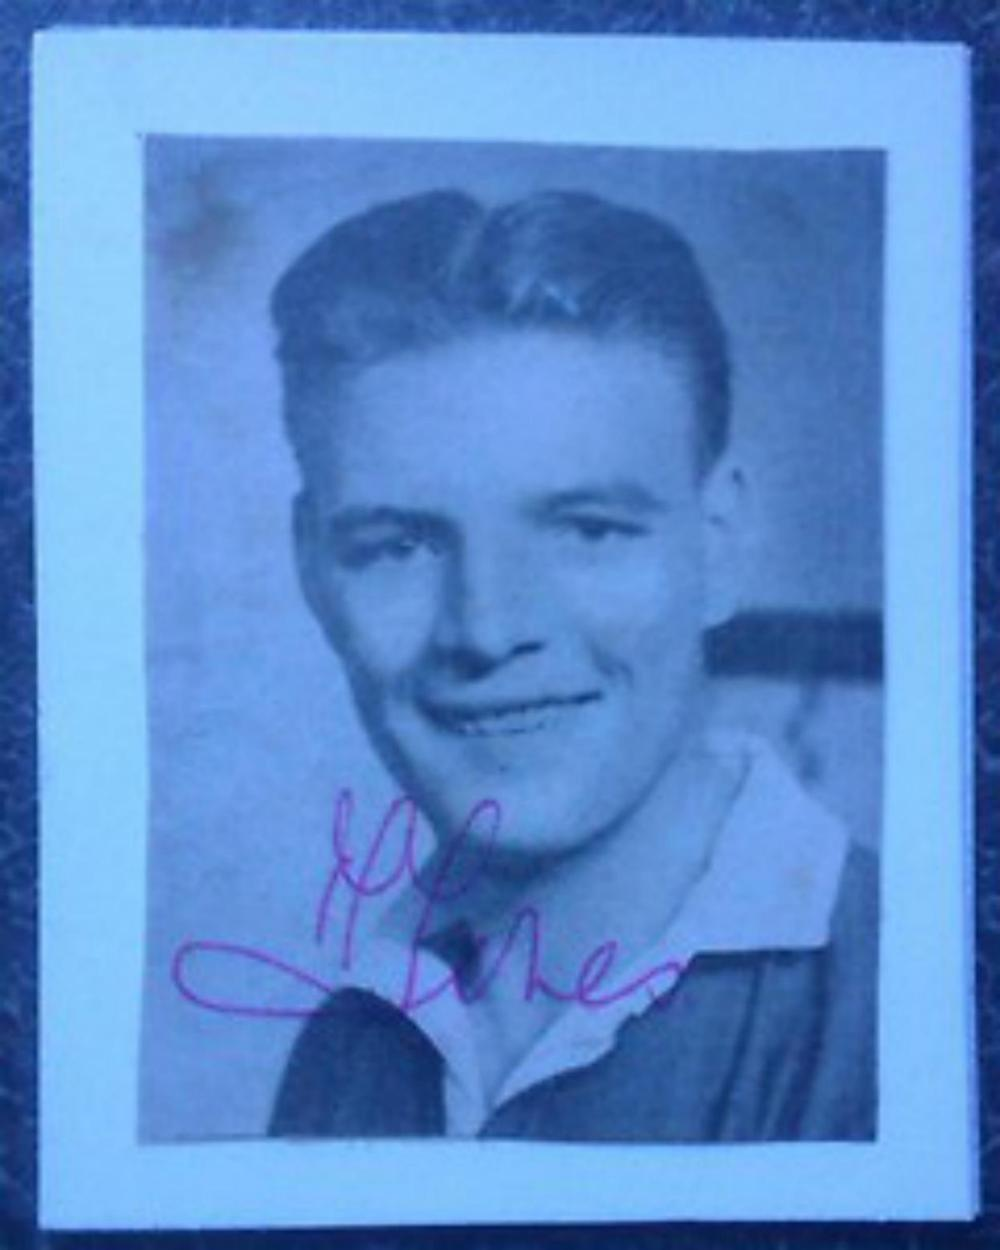 Lot 212: Mark Jones Manchester United - Busby Babe c1956 Genuine signed picture RARE Collecters item. Mark Jones (15 June 1933 ? 6 February 1958) was an English footballer and one of eight Manchester United players to lose their lives in the Munich